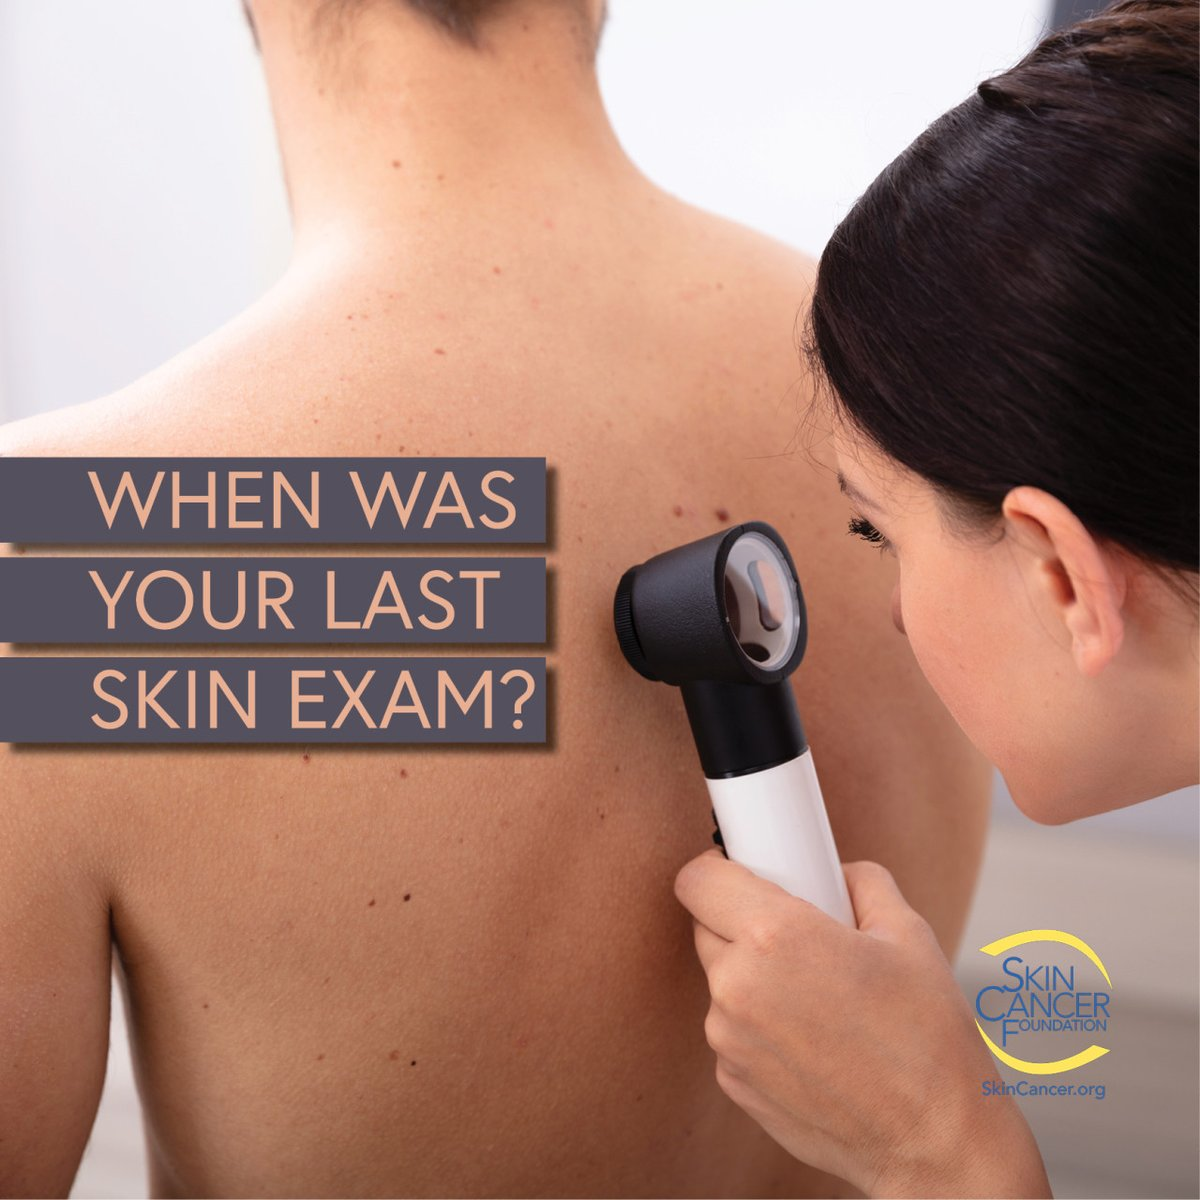 Remember that early detection of #skincancer is the key to the most minimal and cost-effective treatment with the highest chance of a cure. Make your appointment soon! #GoGetChecked